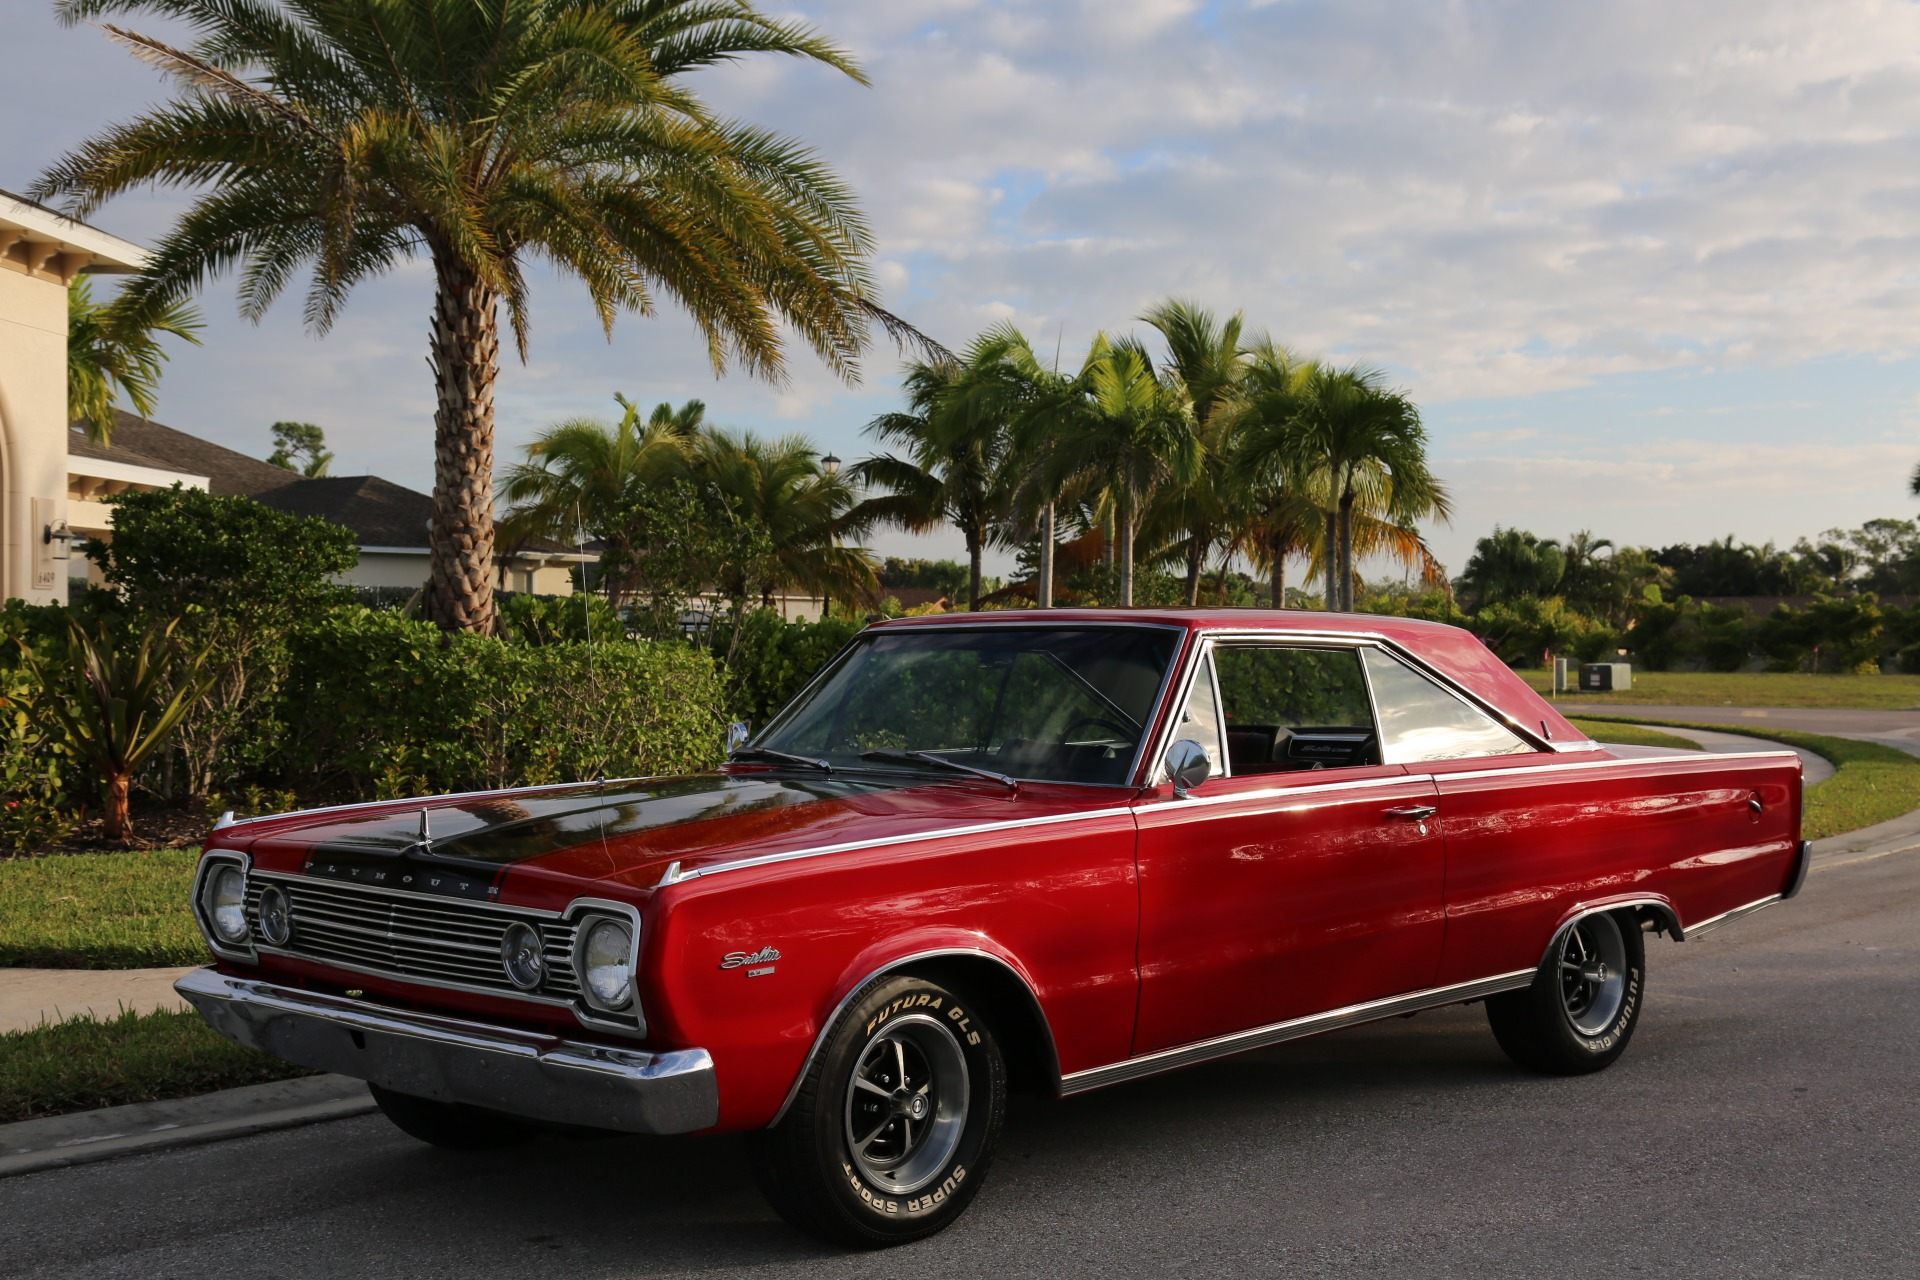 Used 1966 Plymouth Satellite 440 V8 Automatic for sale $19,900 at Muscle Cars for Sale Inc. in Fort Myers FL 33912 3